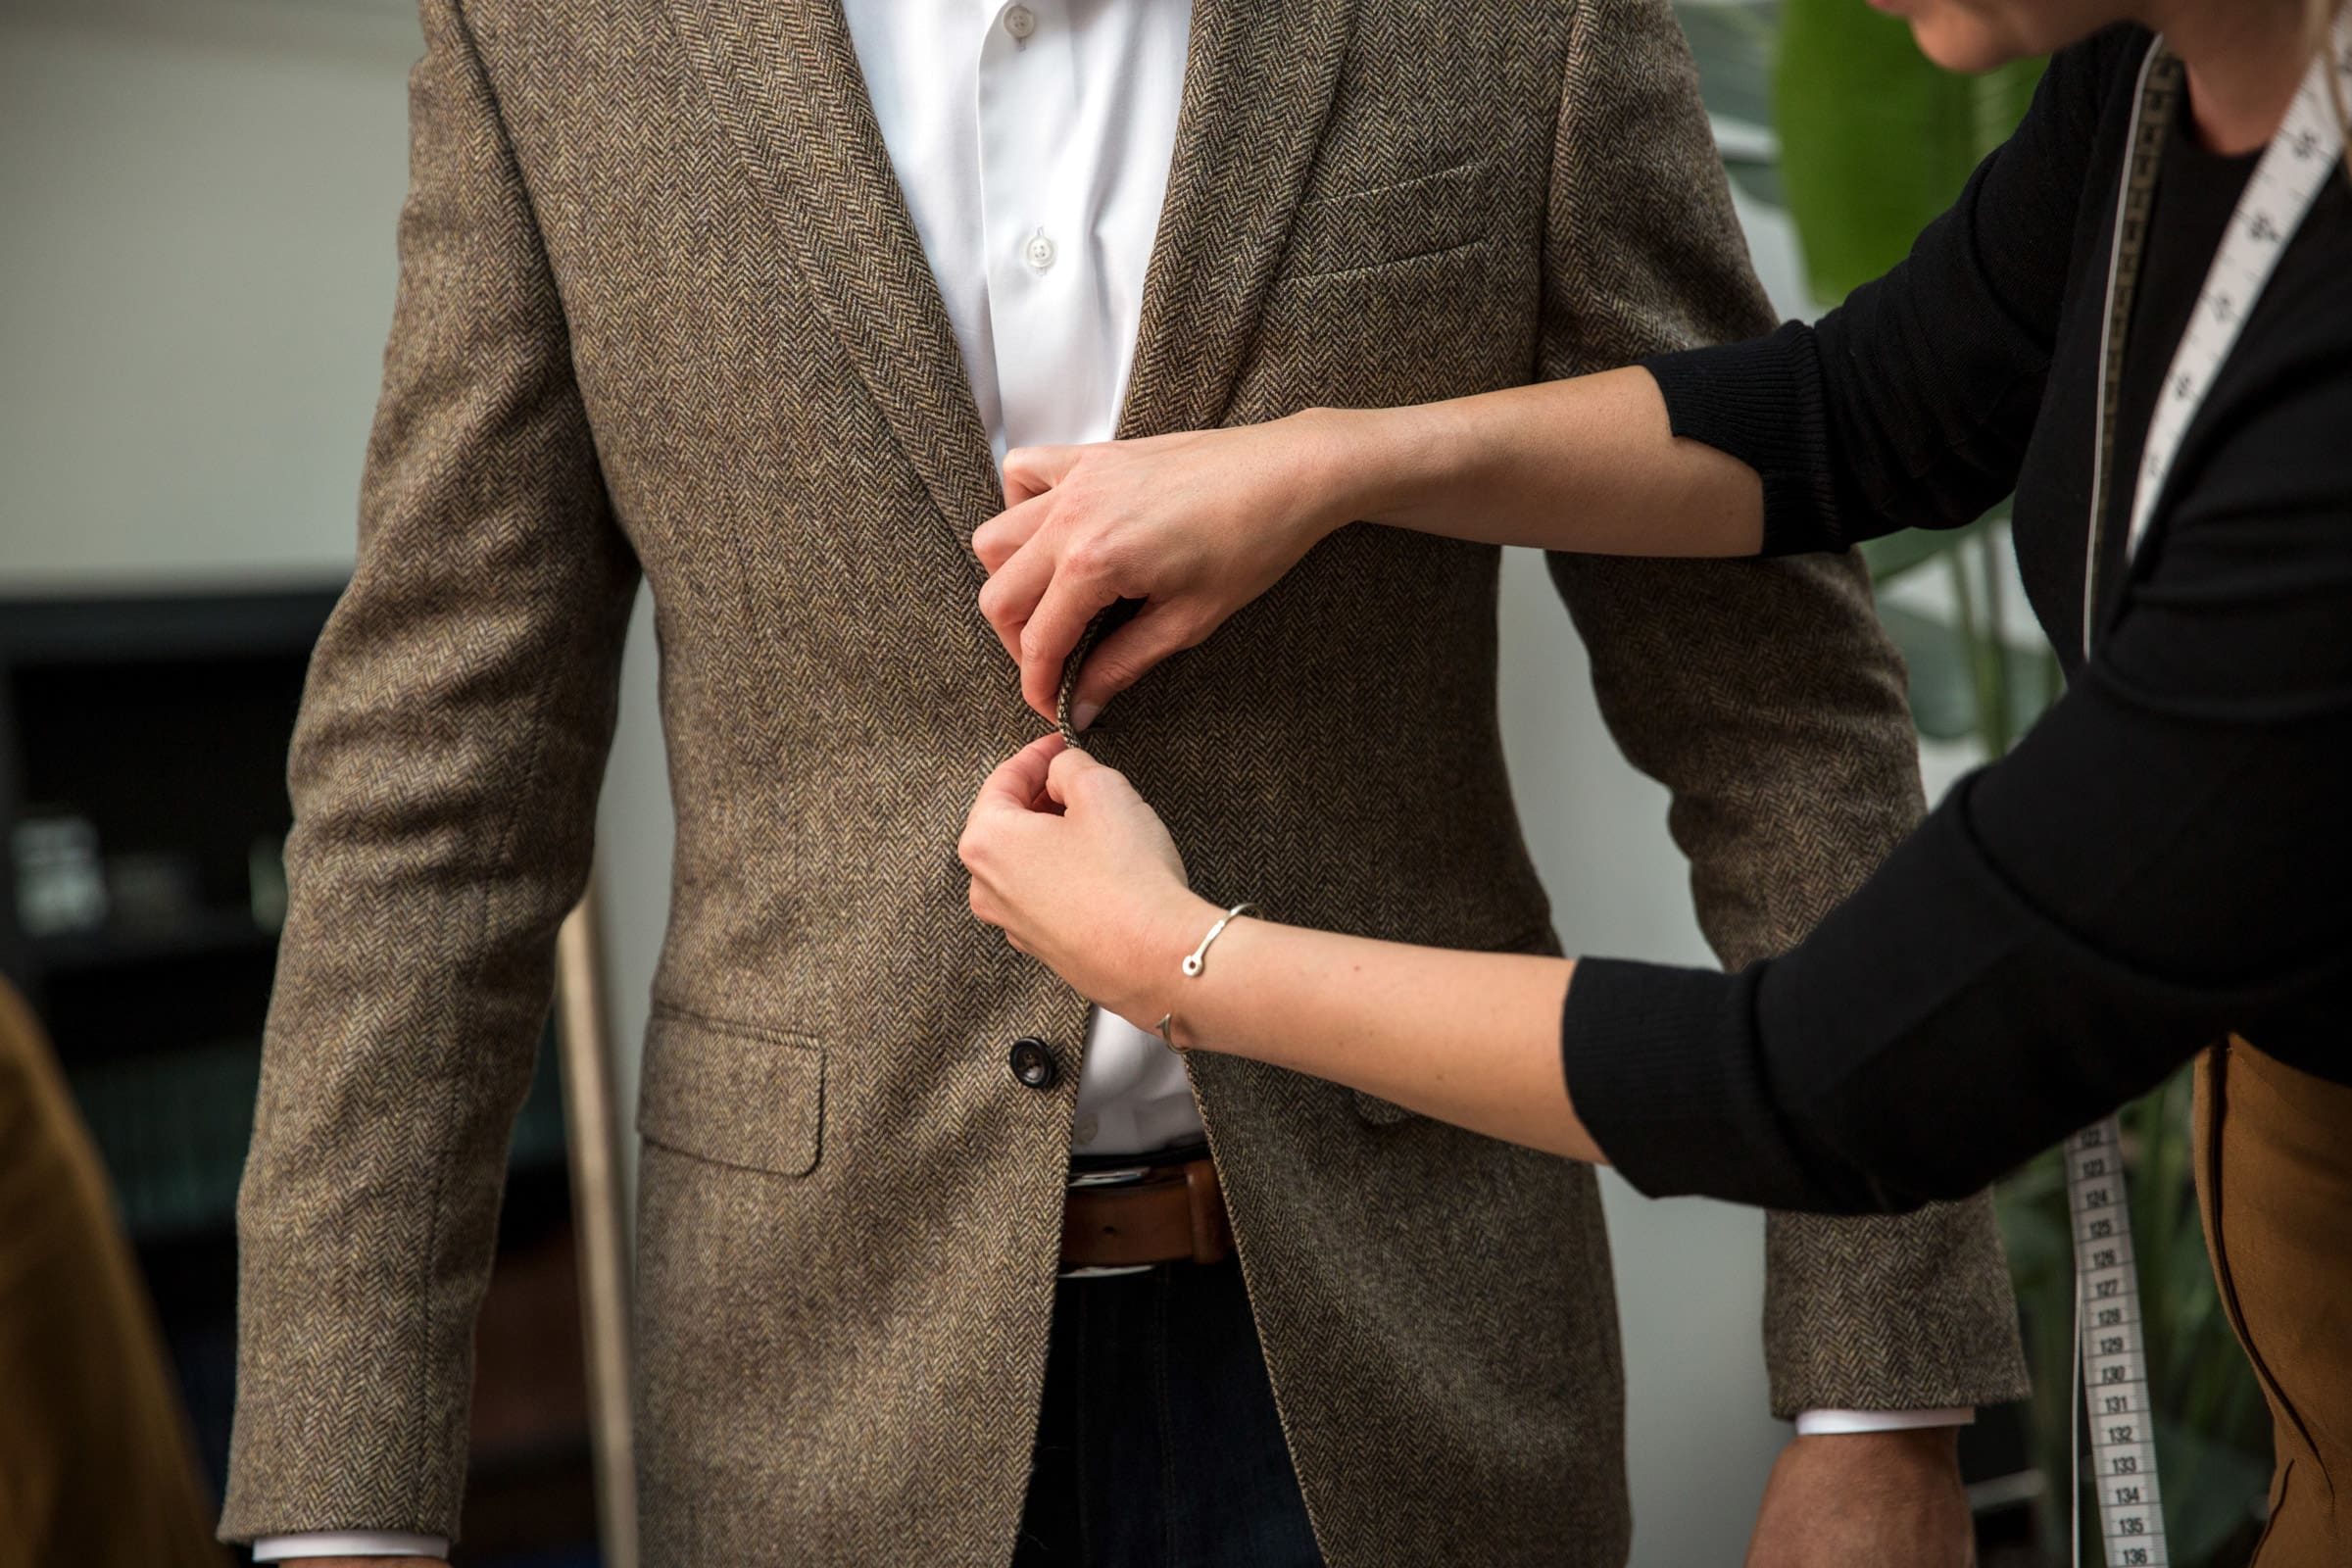 Trunk Club Custom measurement and fitting process